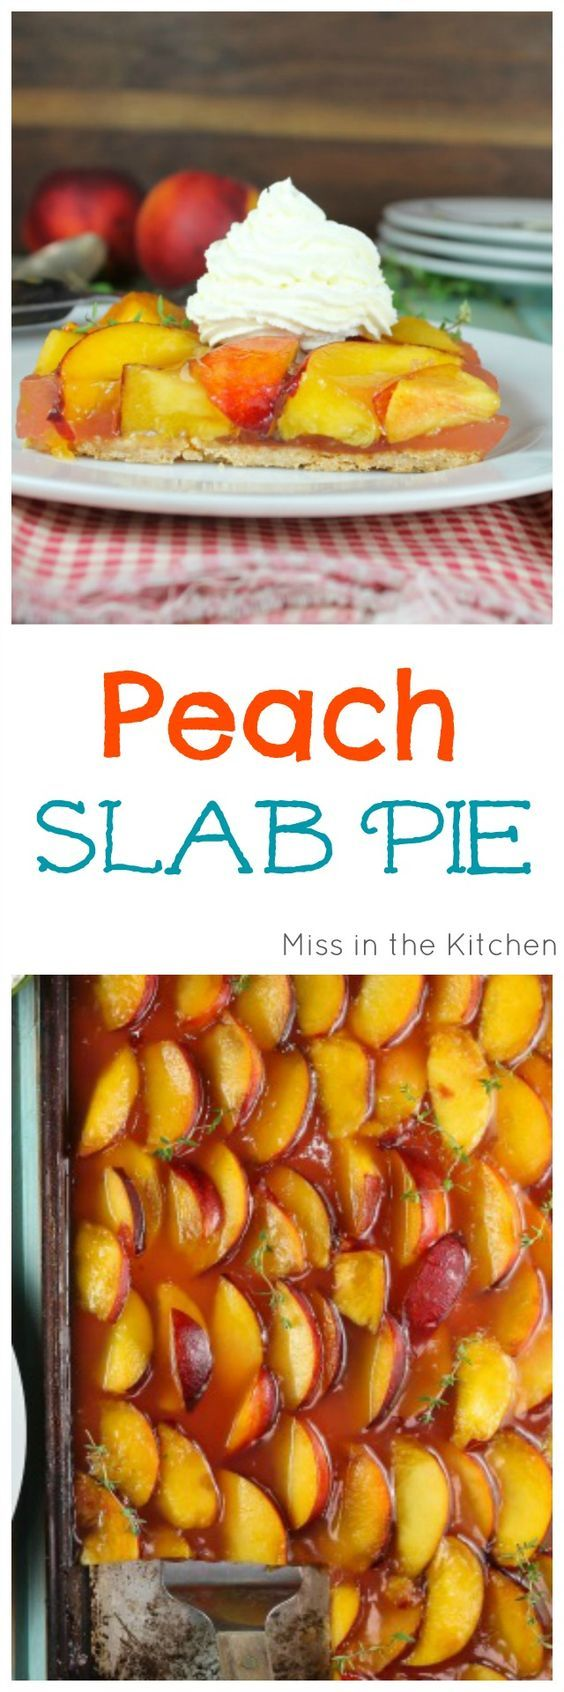 Peach Slab Pie Dessert Recipe using summer fresh peaches.